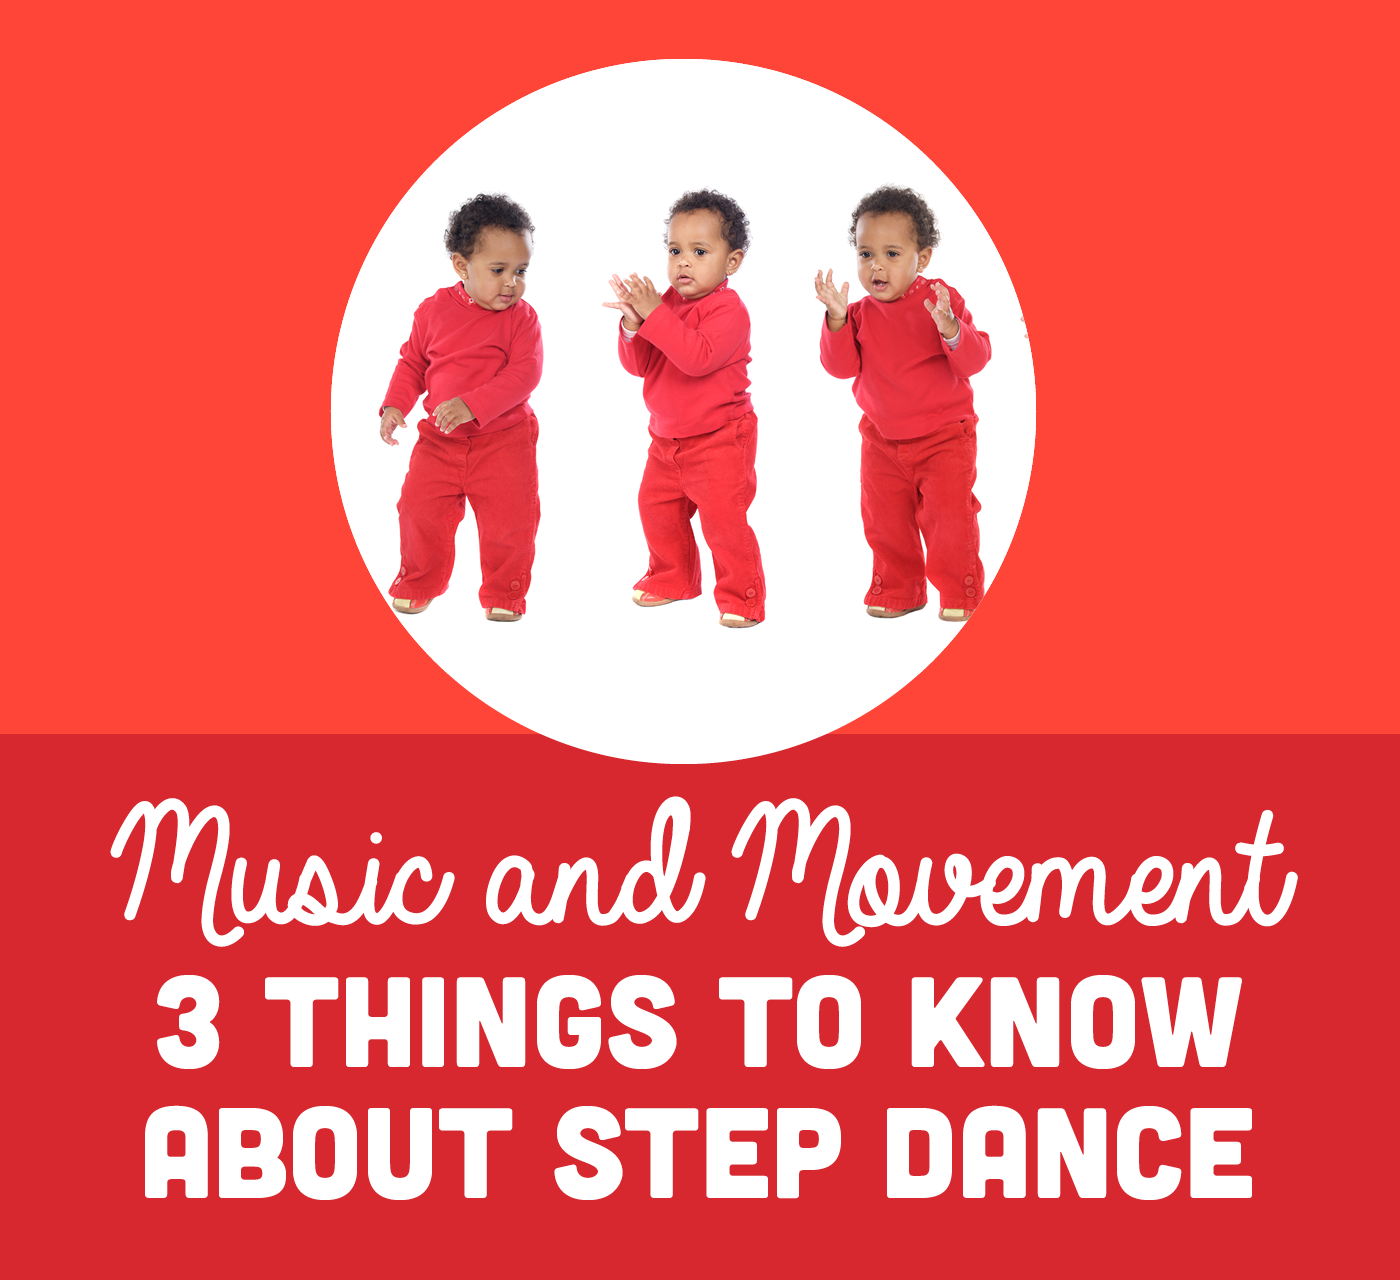 3 Things to Know About Step Dance